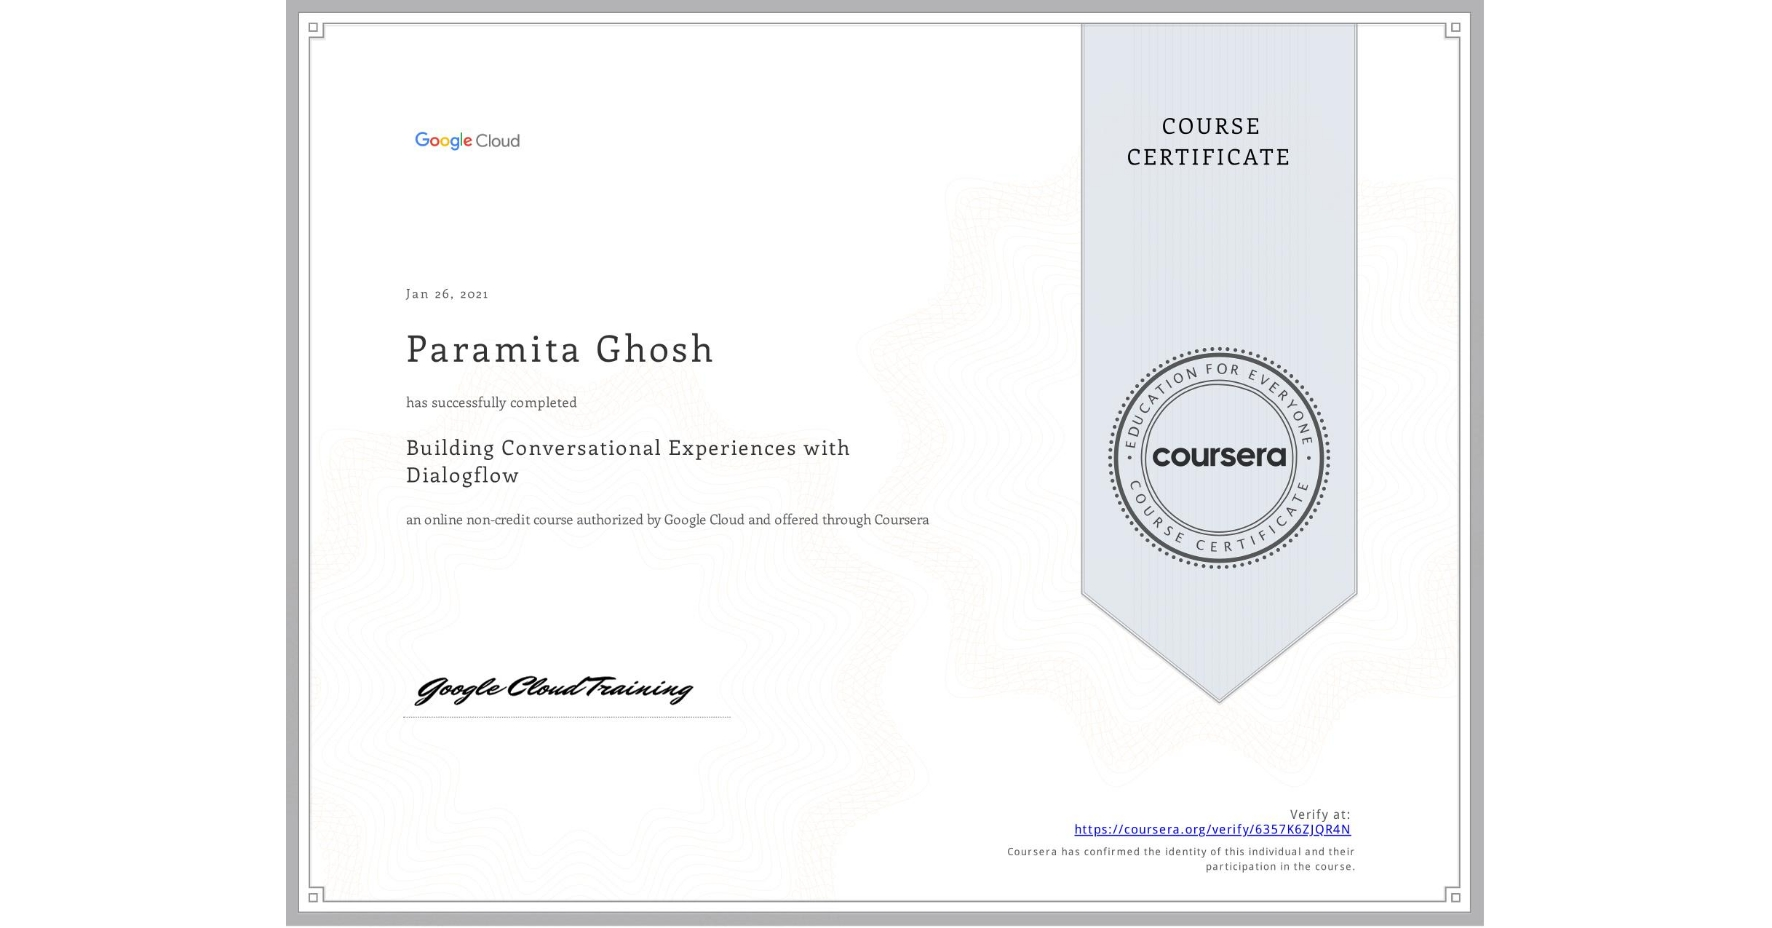 View certificate for Paramita Ghosh, Building Conversational Experiences with Dialogflow, an online non-credit course authorized by Google Cloud and offered through Coursera